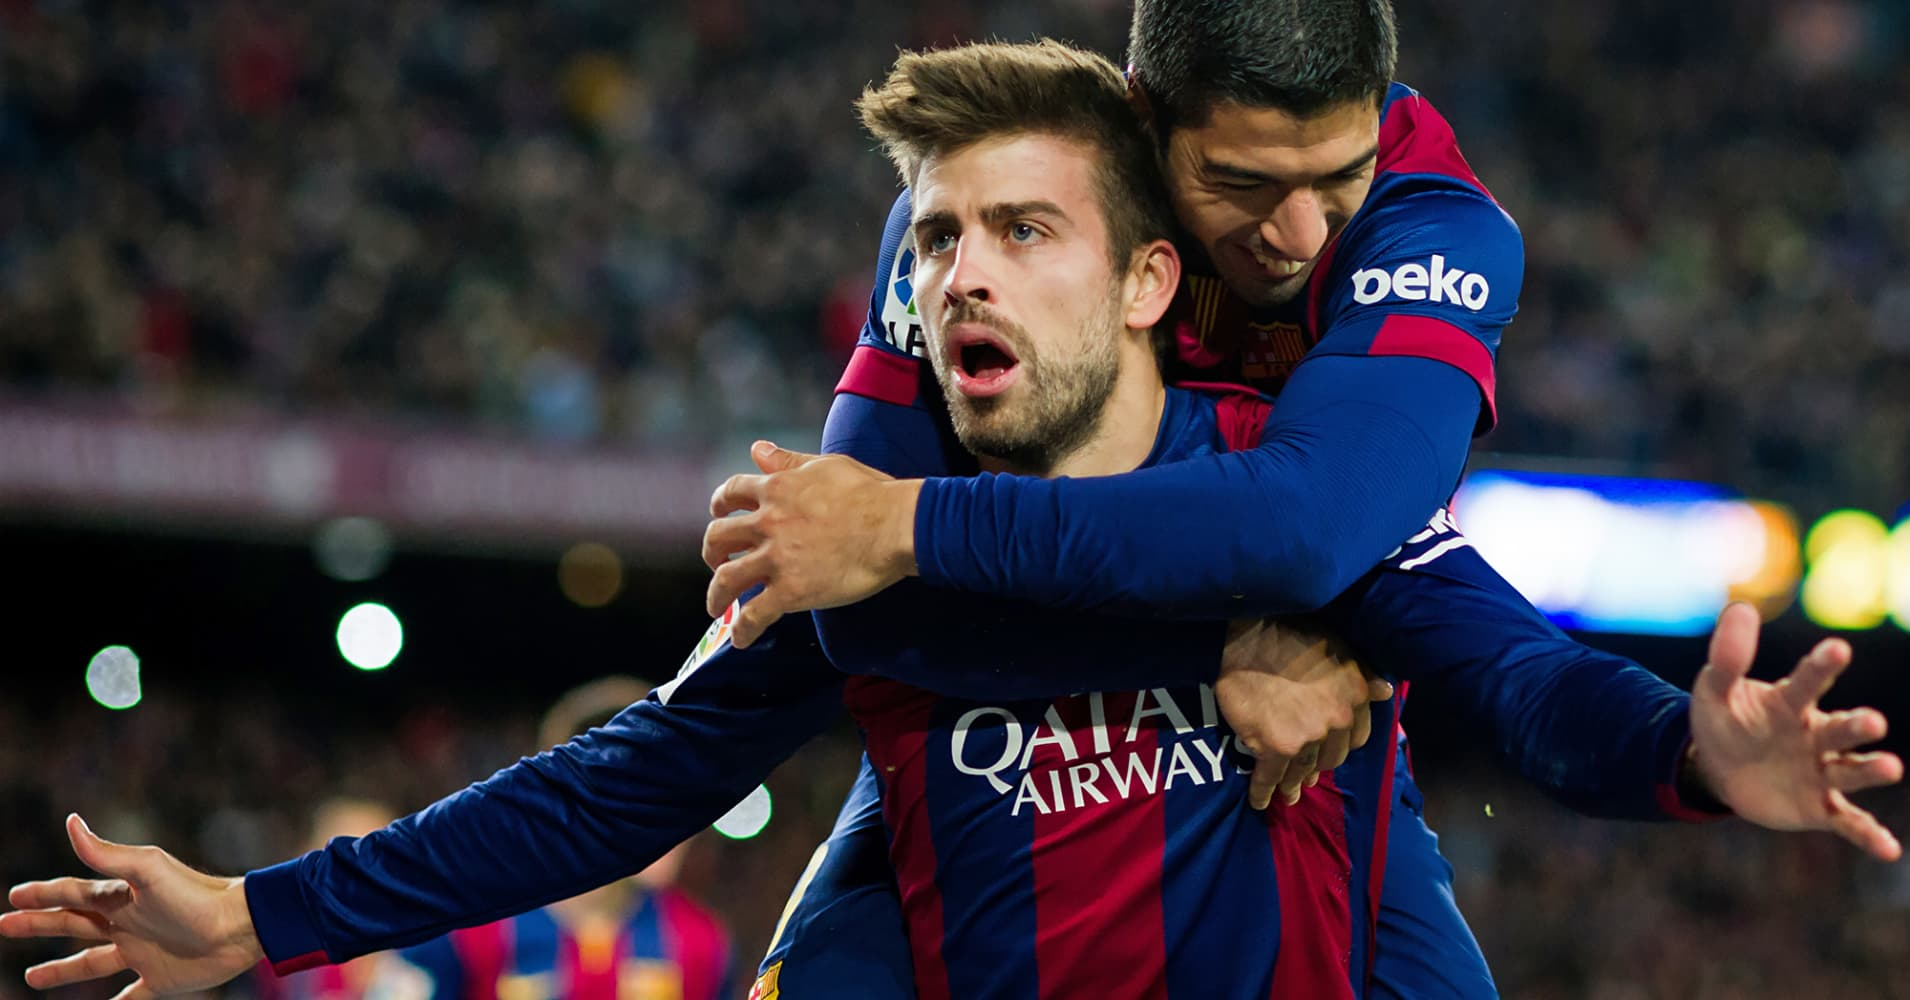 Gerard Piqué Soccer star and video game creator